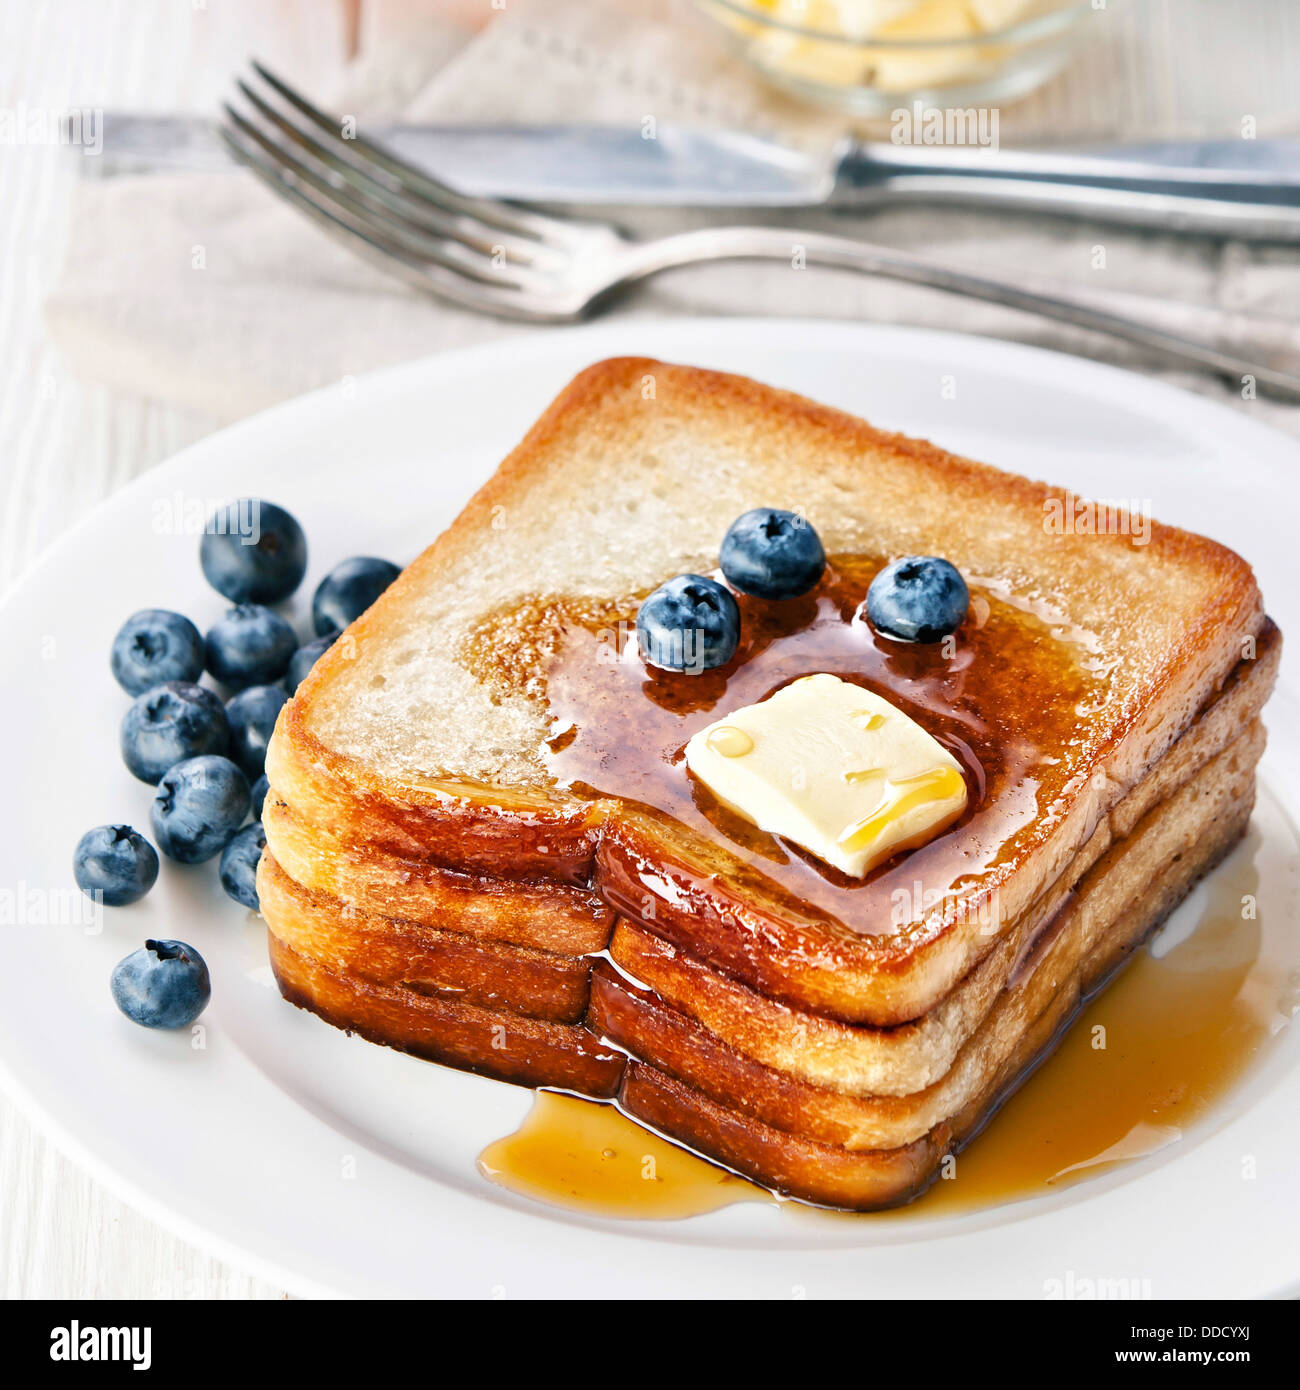 French toast with blueberries, maple syrup and butter - Stock Image